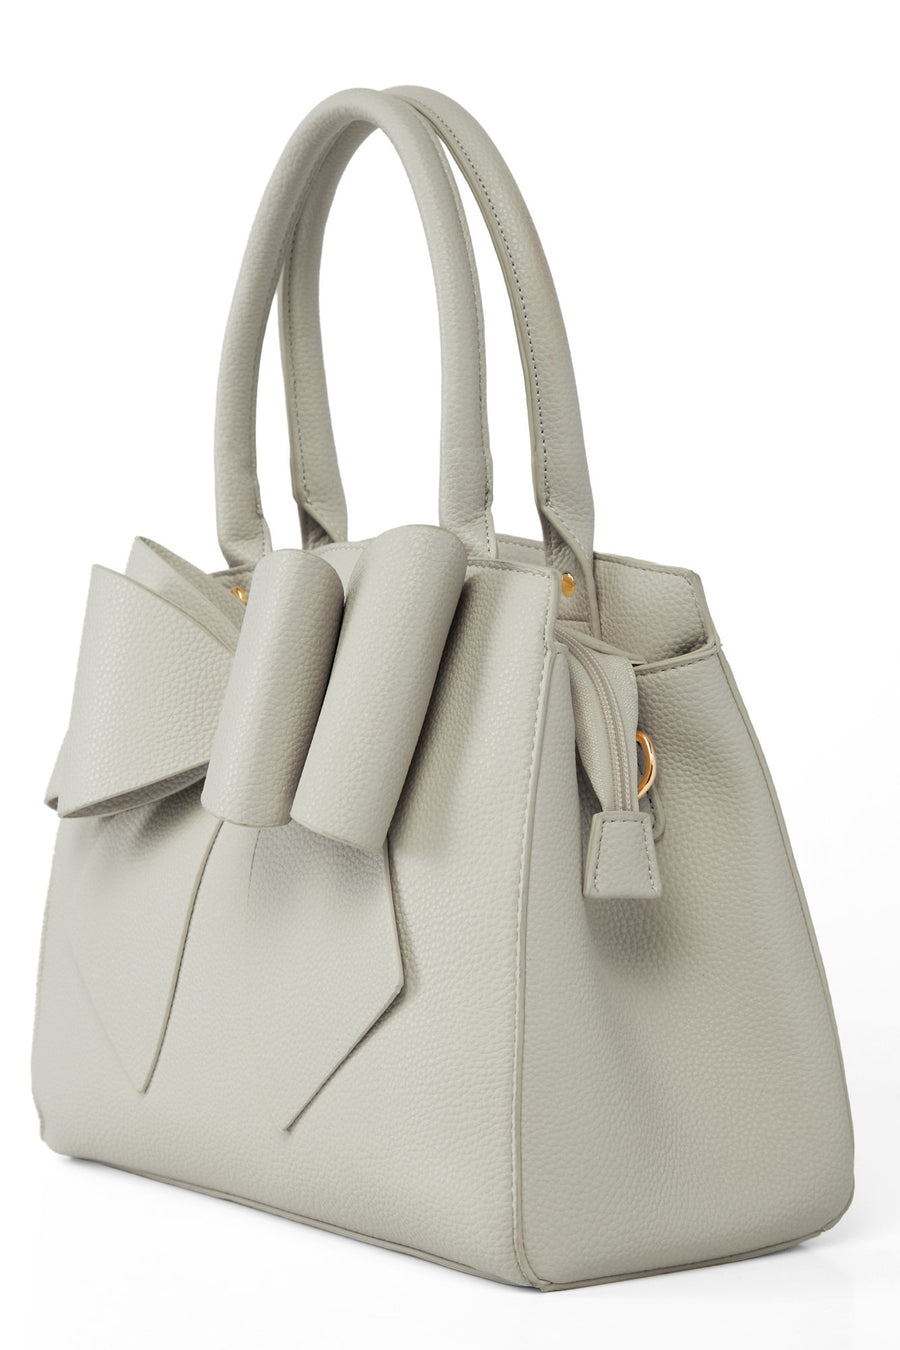 Bow Time Bag - Grey